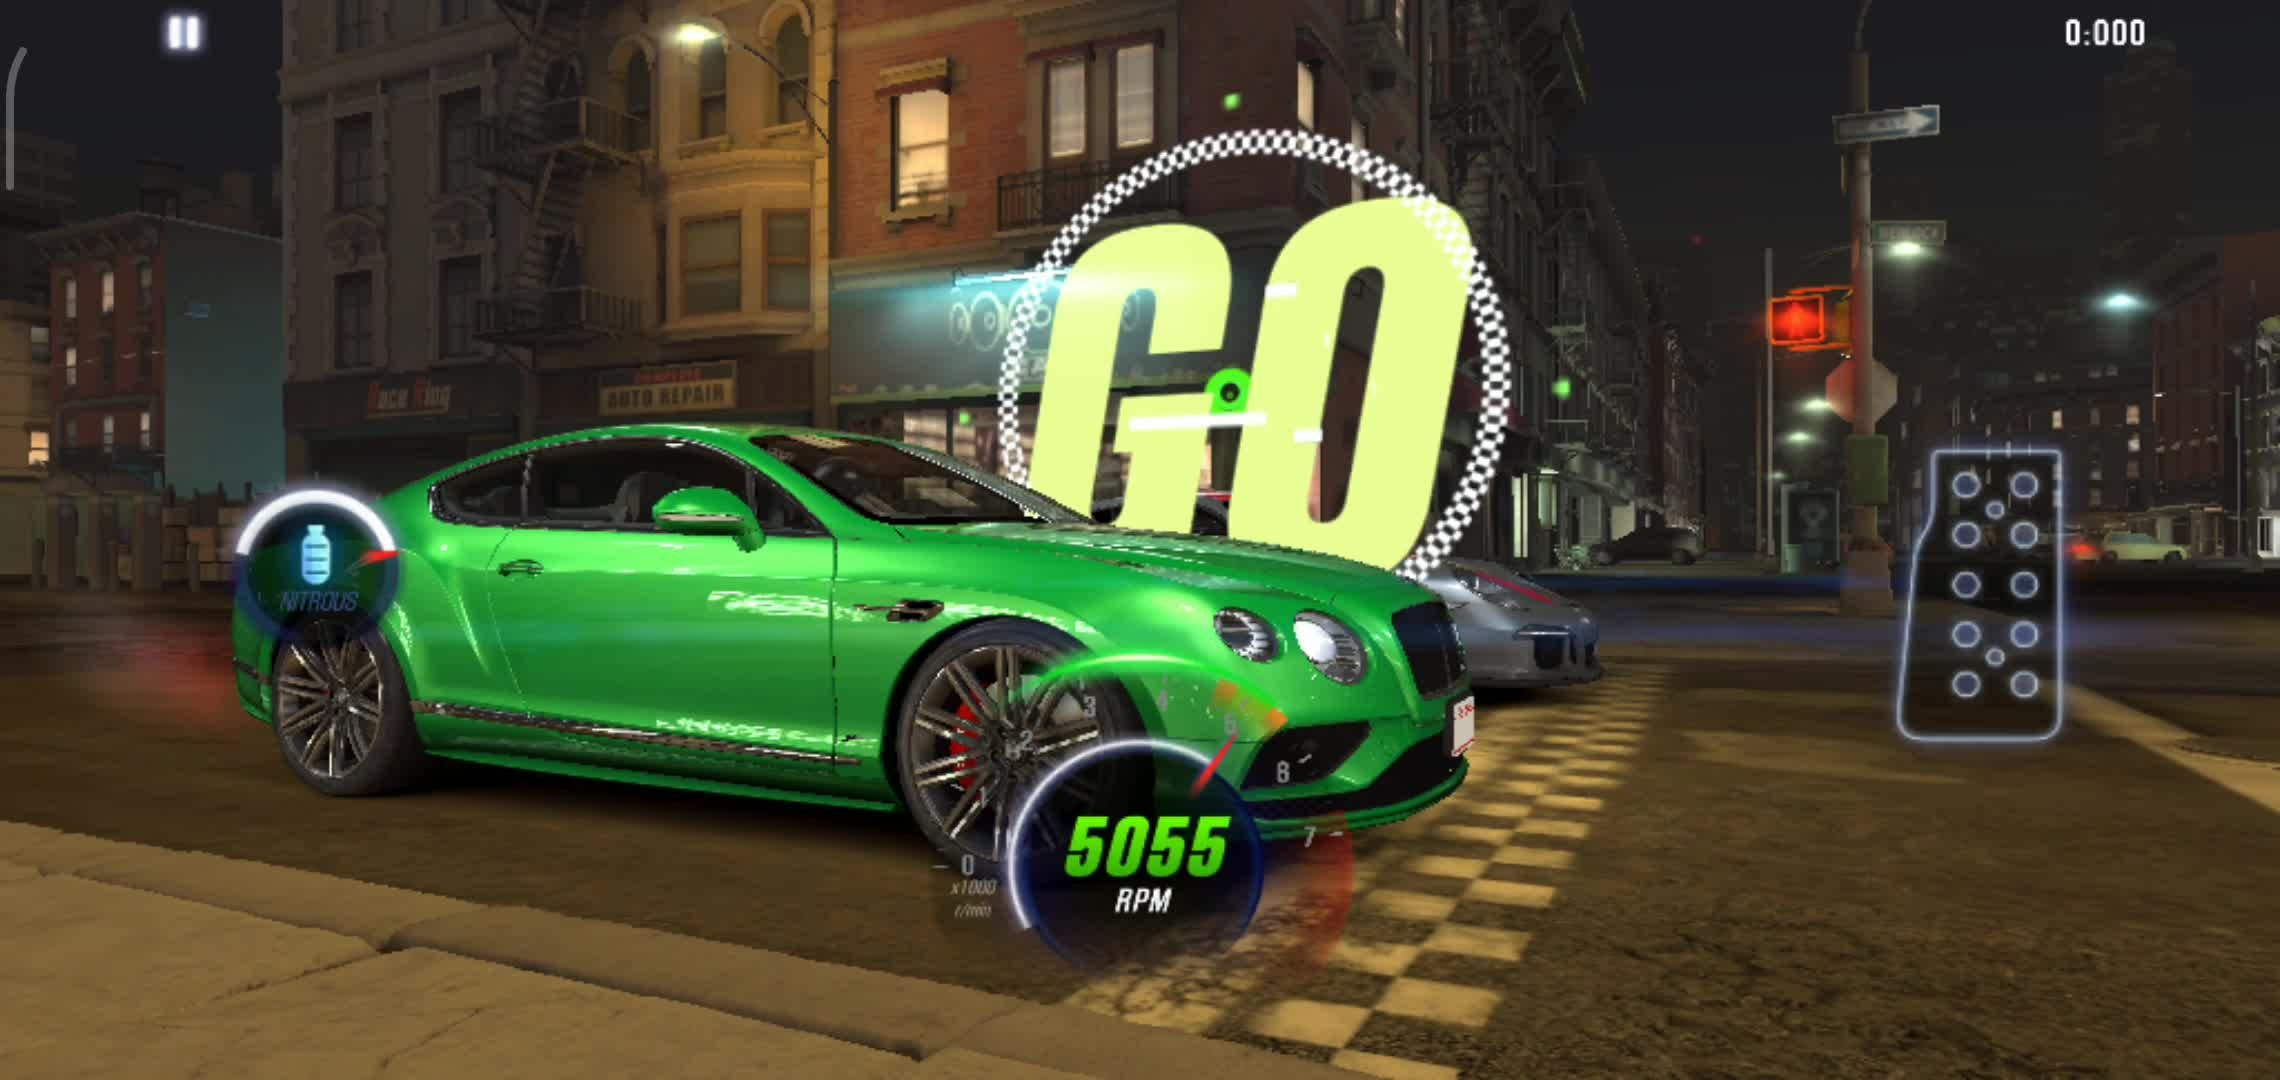 Entertainment: General - CSR 2 gameplay! (pt 1) video cover image 1